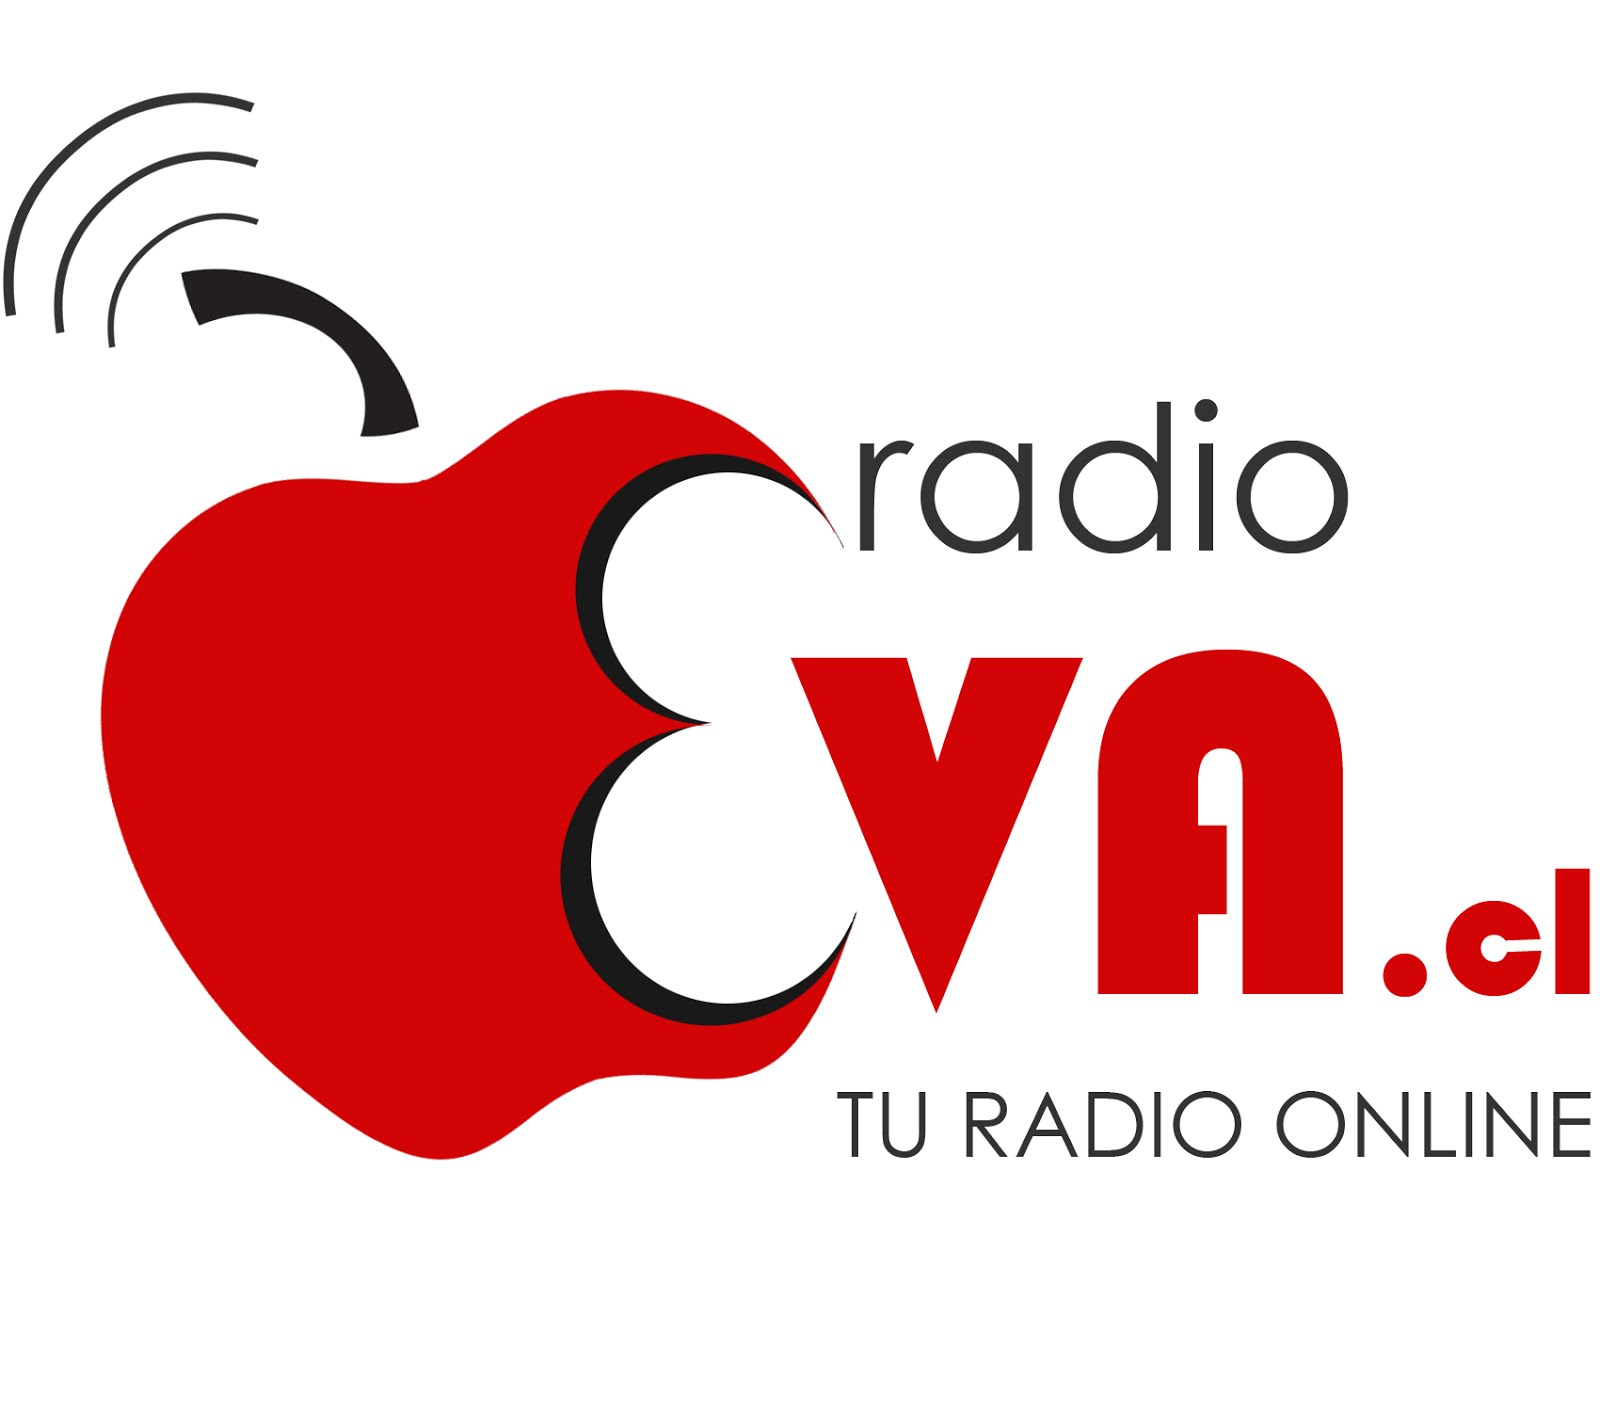 Radio Eva - Chile